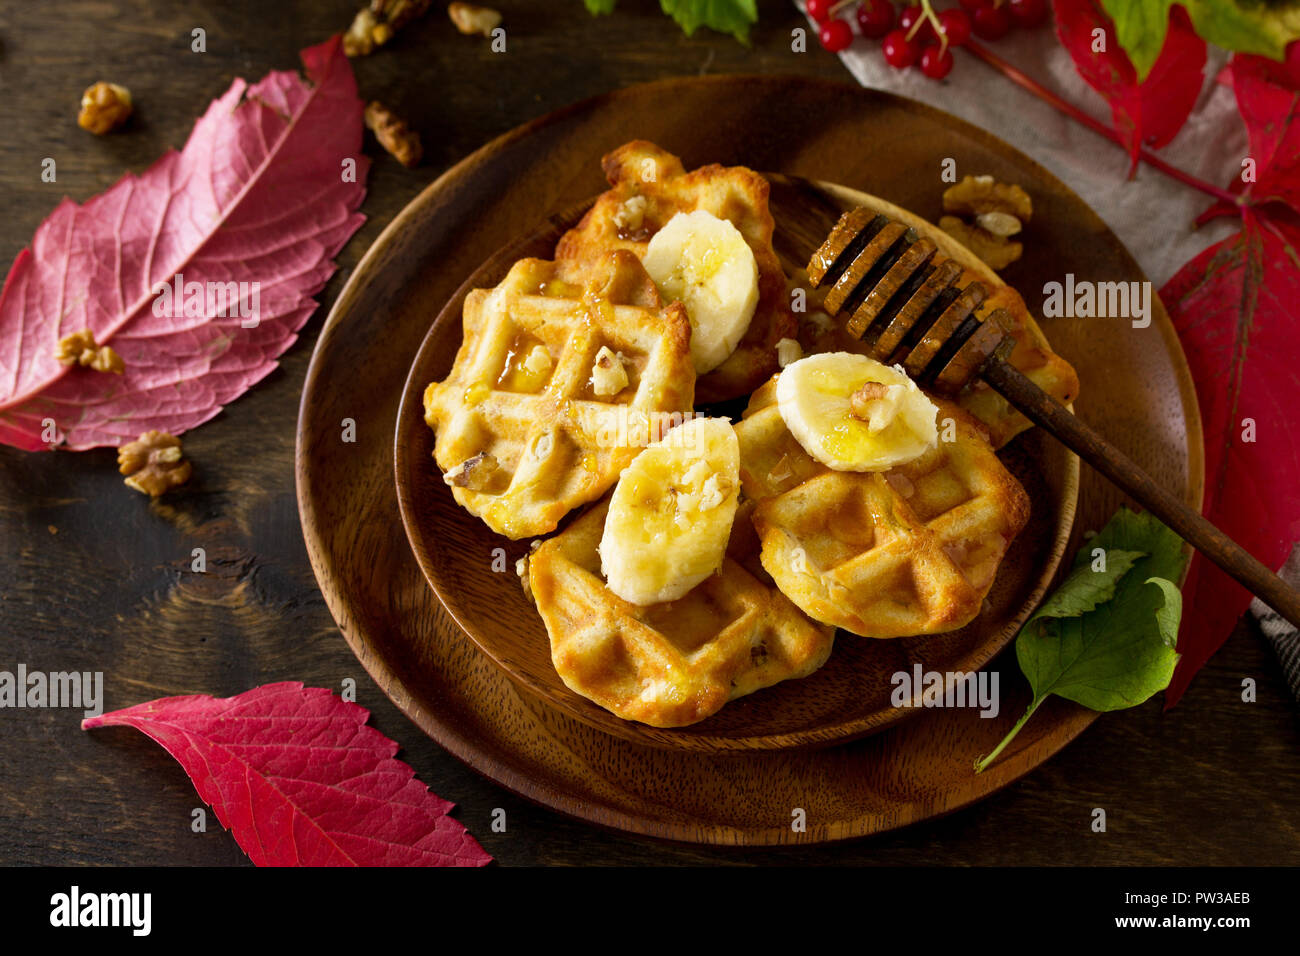 Thanksgiving baking. Belgian Walnut Wafers on a wooden kitchen table, served with fresh banana slices and honey. Copy space. - Stock Image